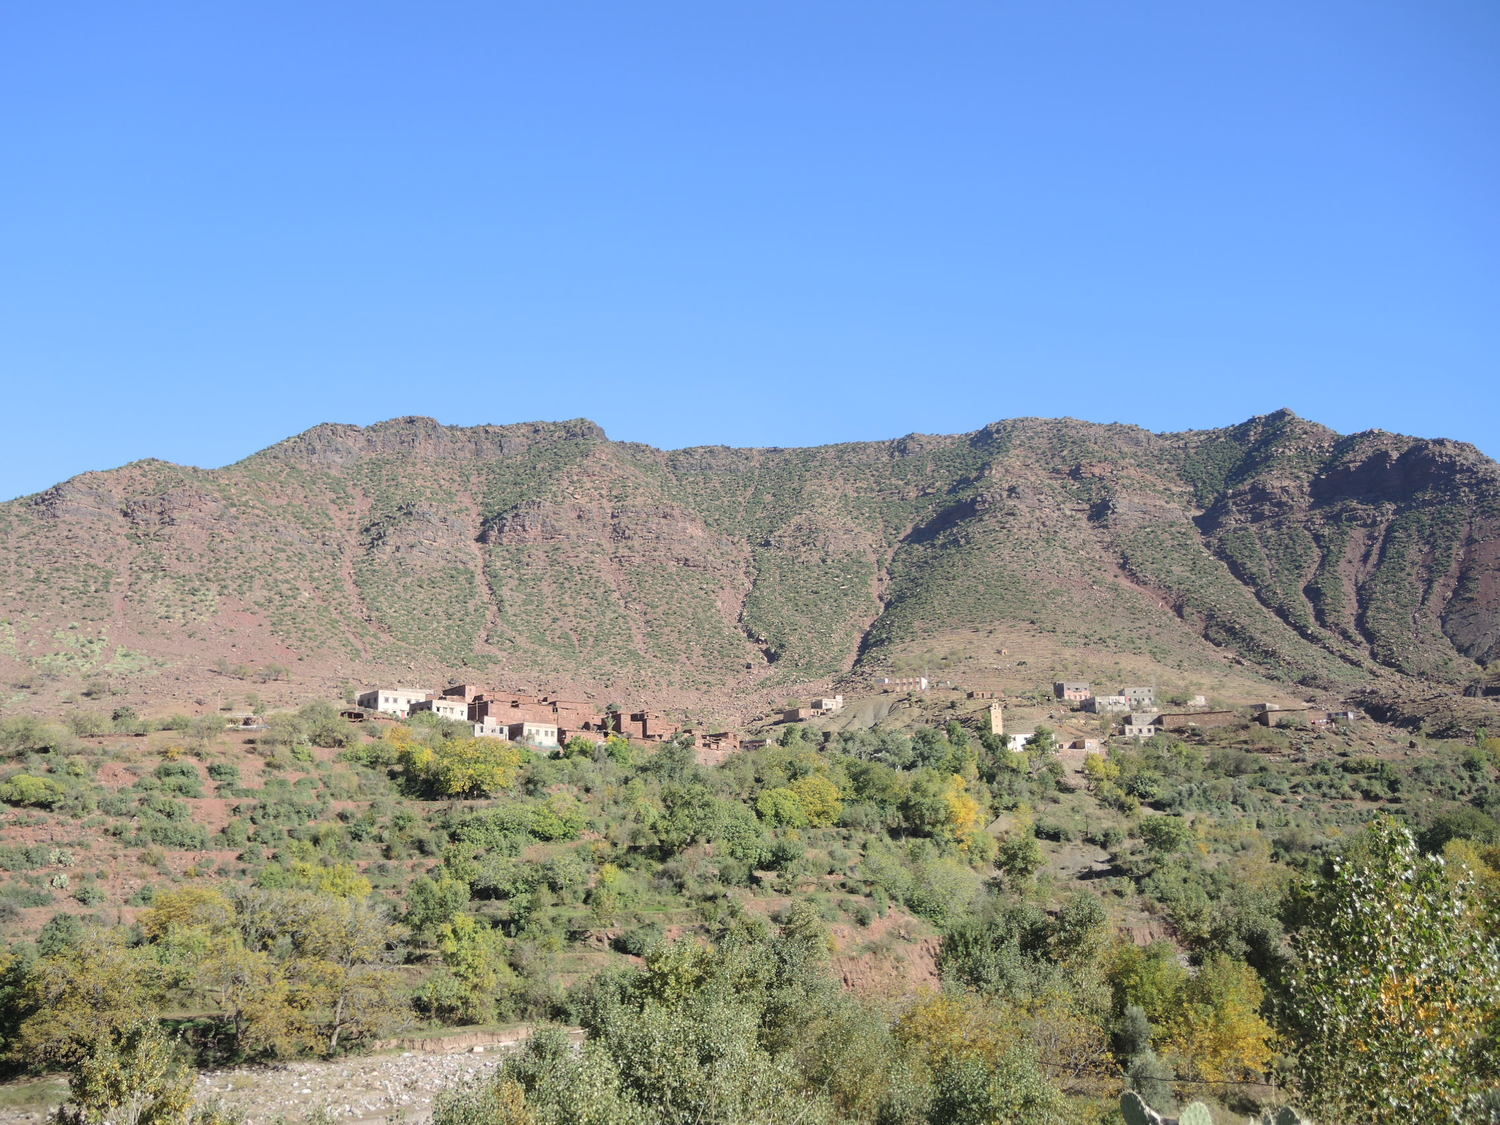 Deeper valleys of the Atlas Mountains near the rivers are green and habituaed